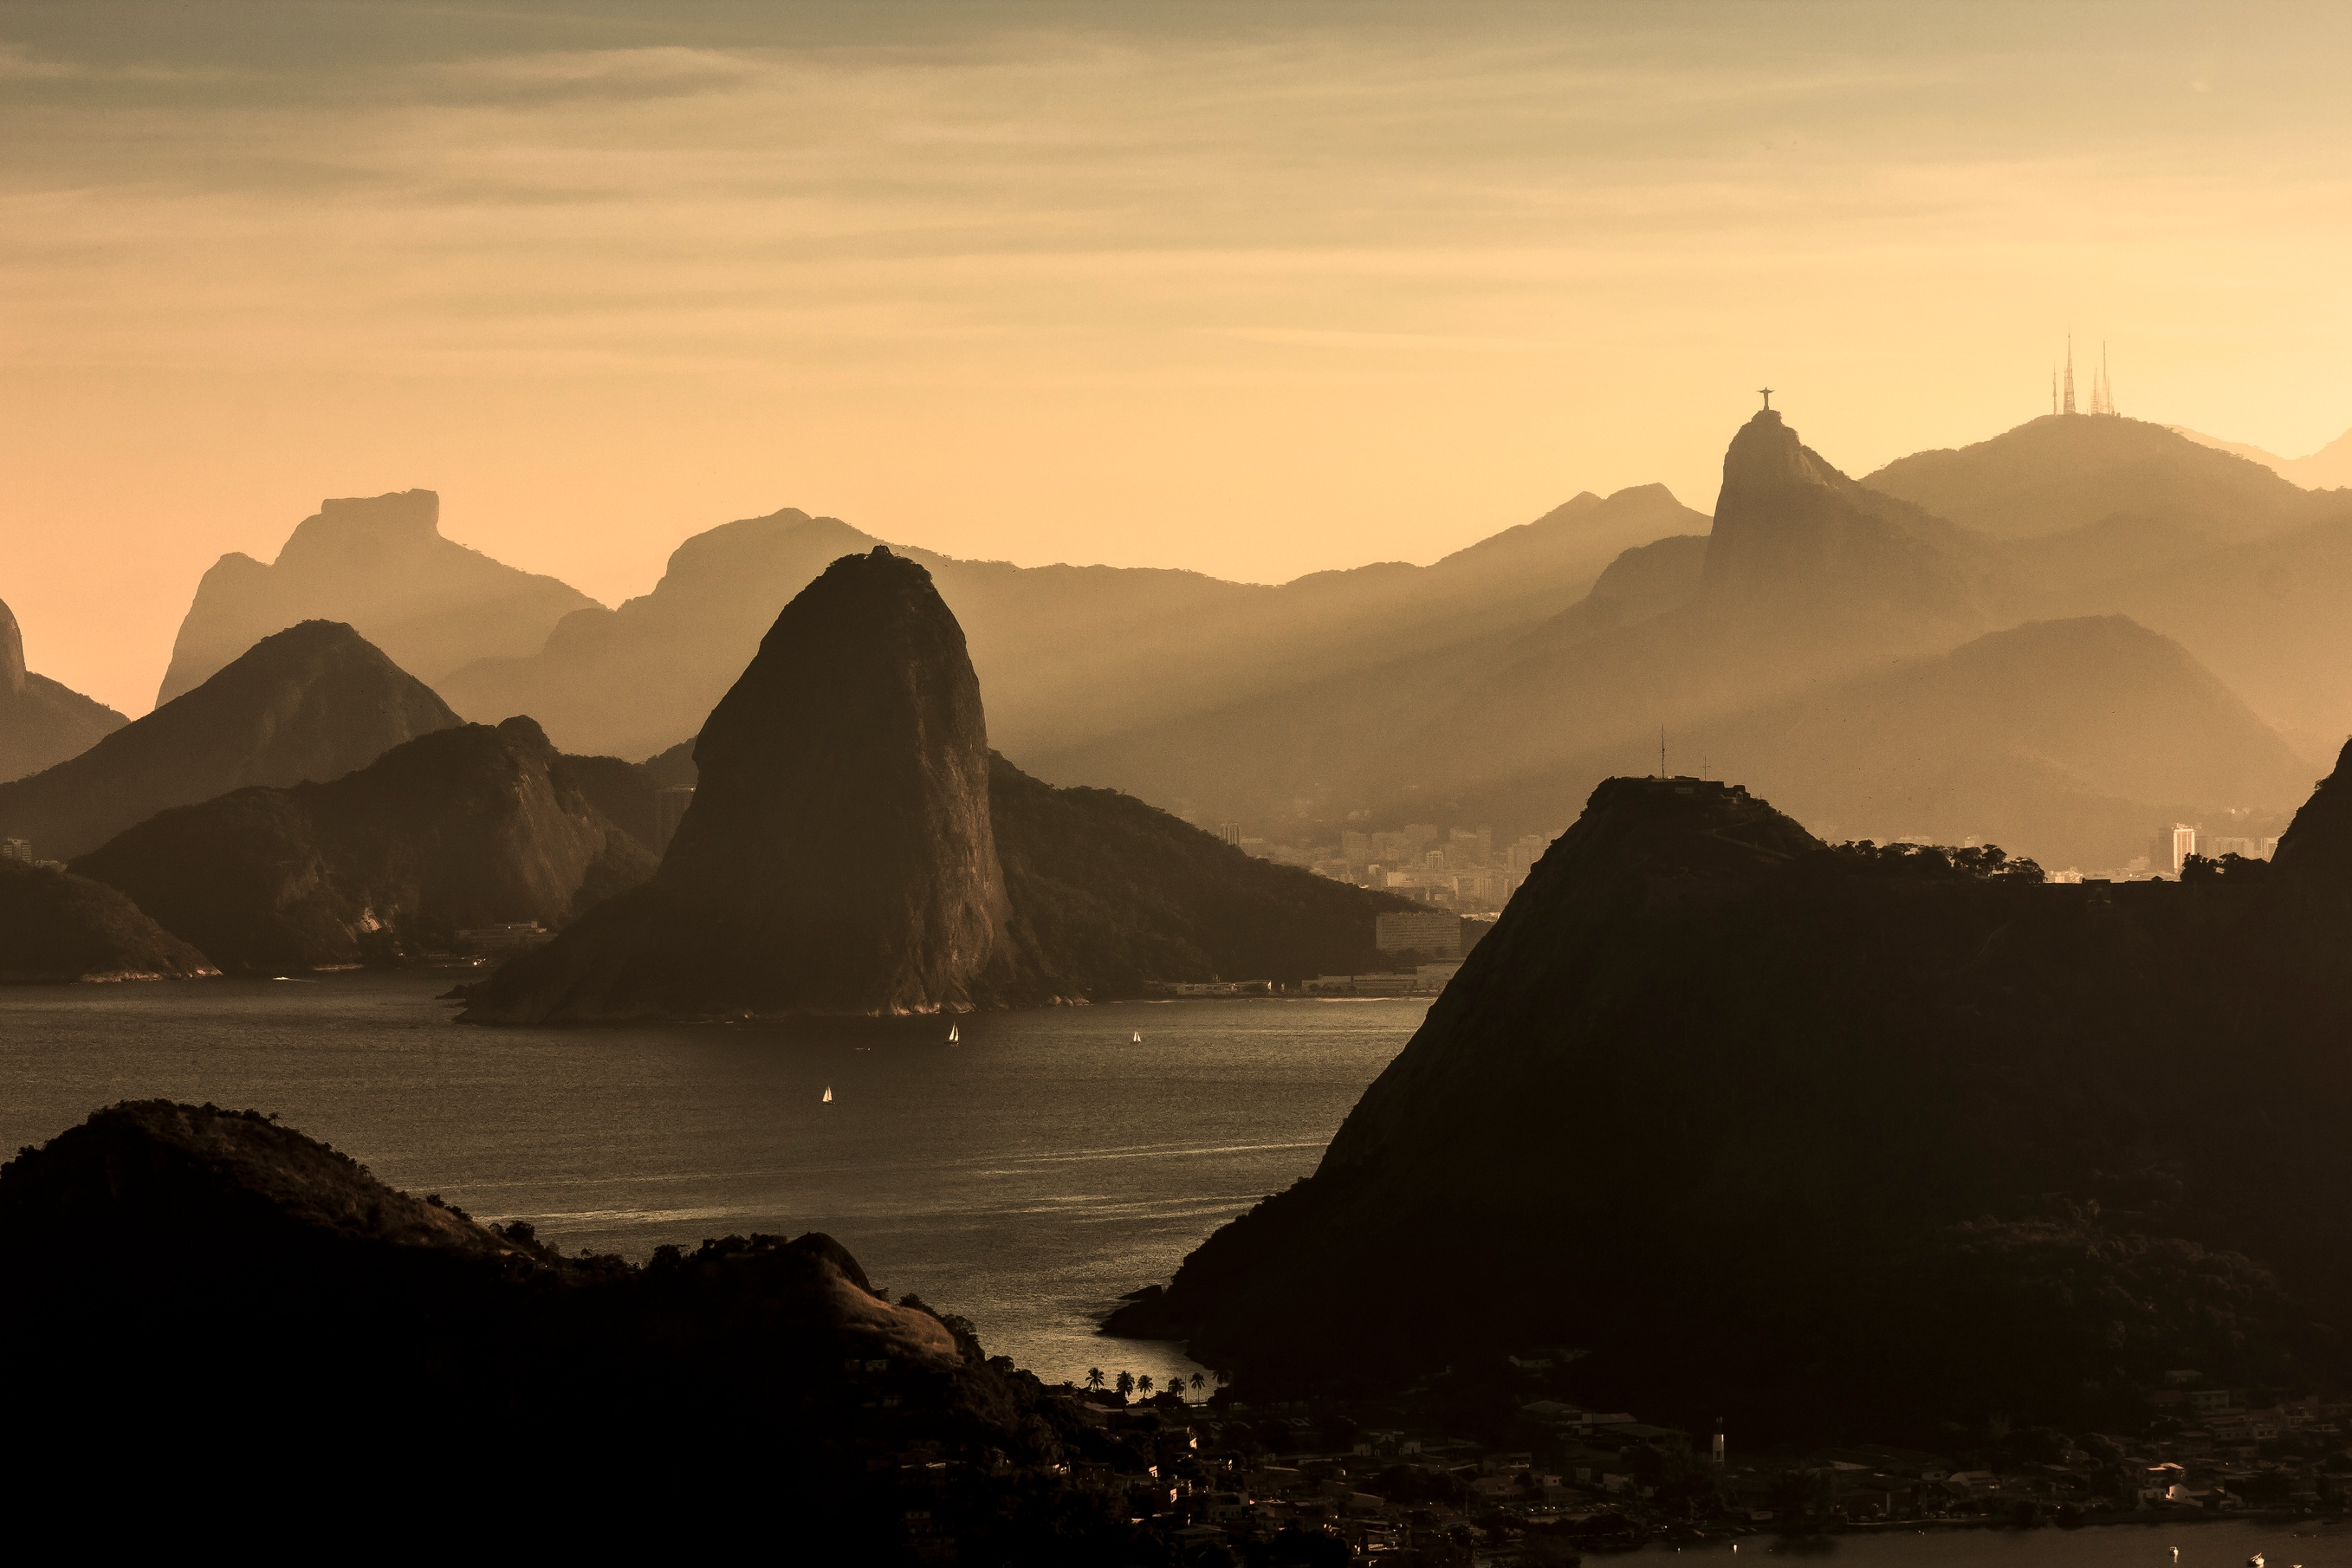 Overhead view in Rio de Janeiro of mountains and water at sunrise/sunset